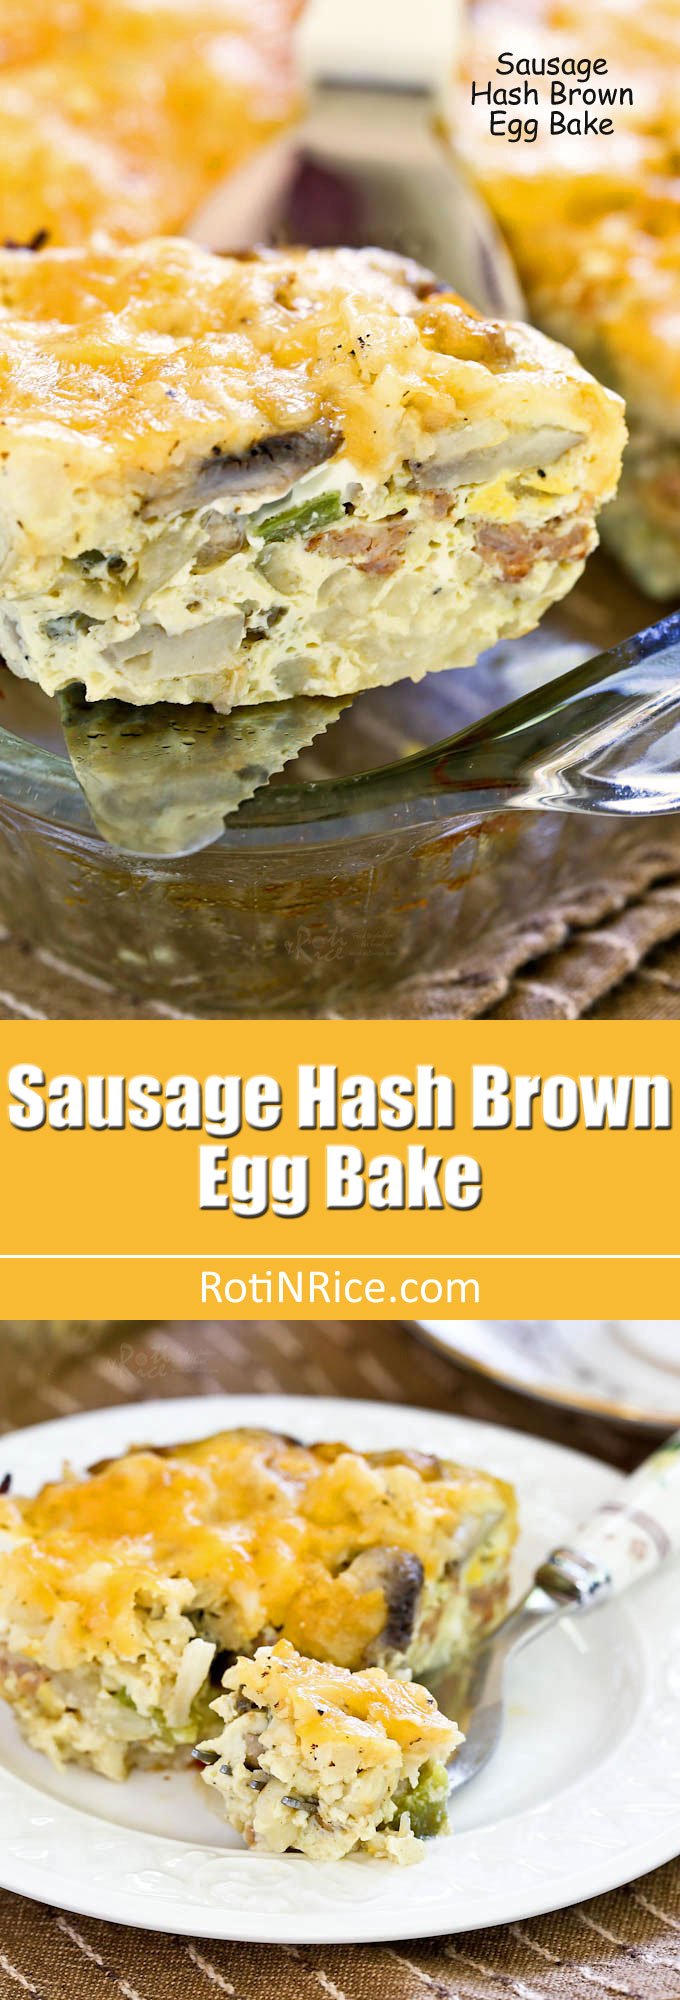 This layered Sausage Hash Brown Egg Bake makes a hearty and delicious breakfast for a crowd. Great for the weekend or when you have company.   RotiNRice.com